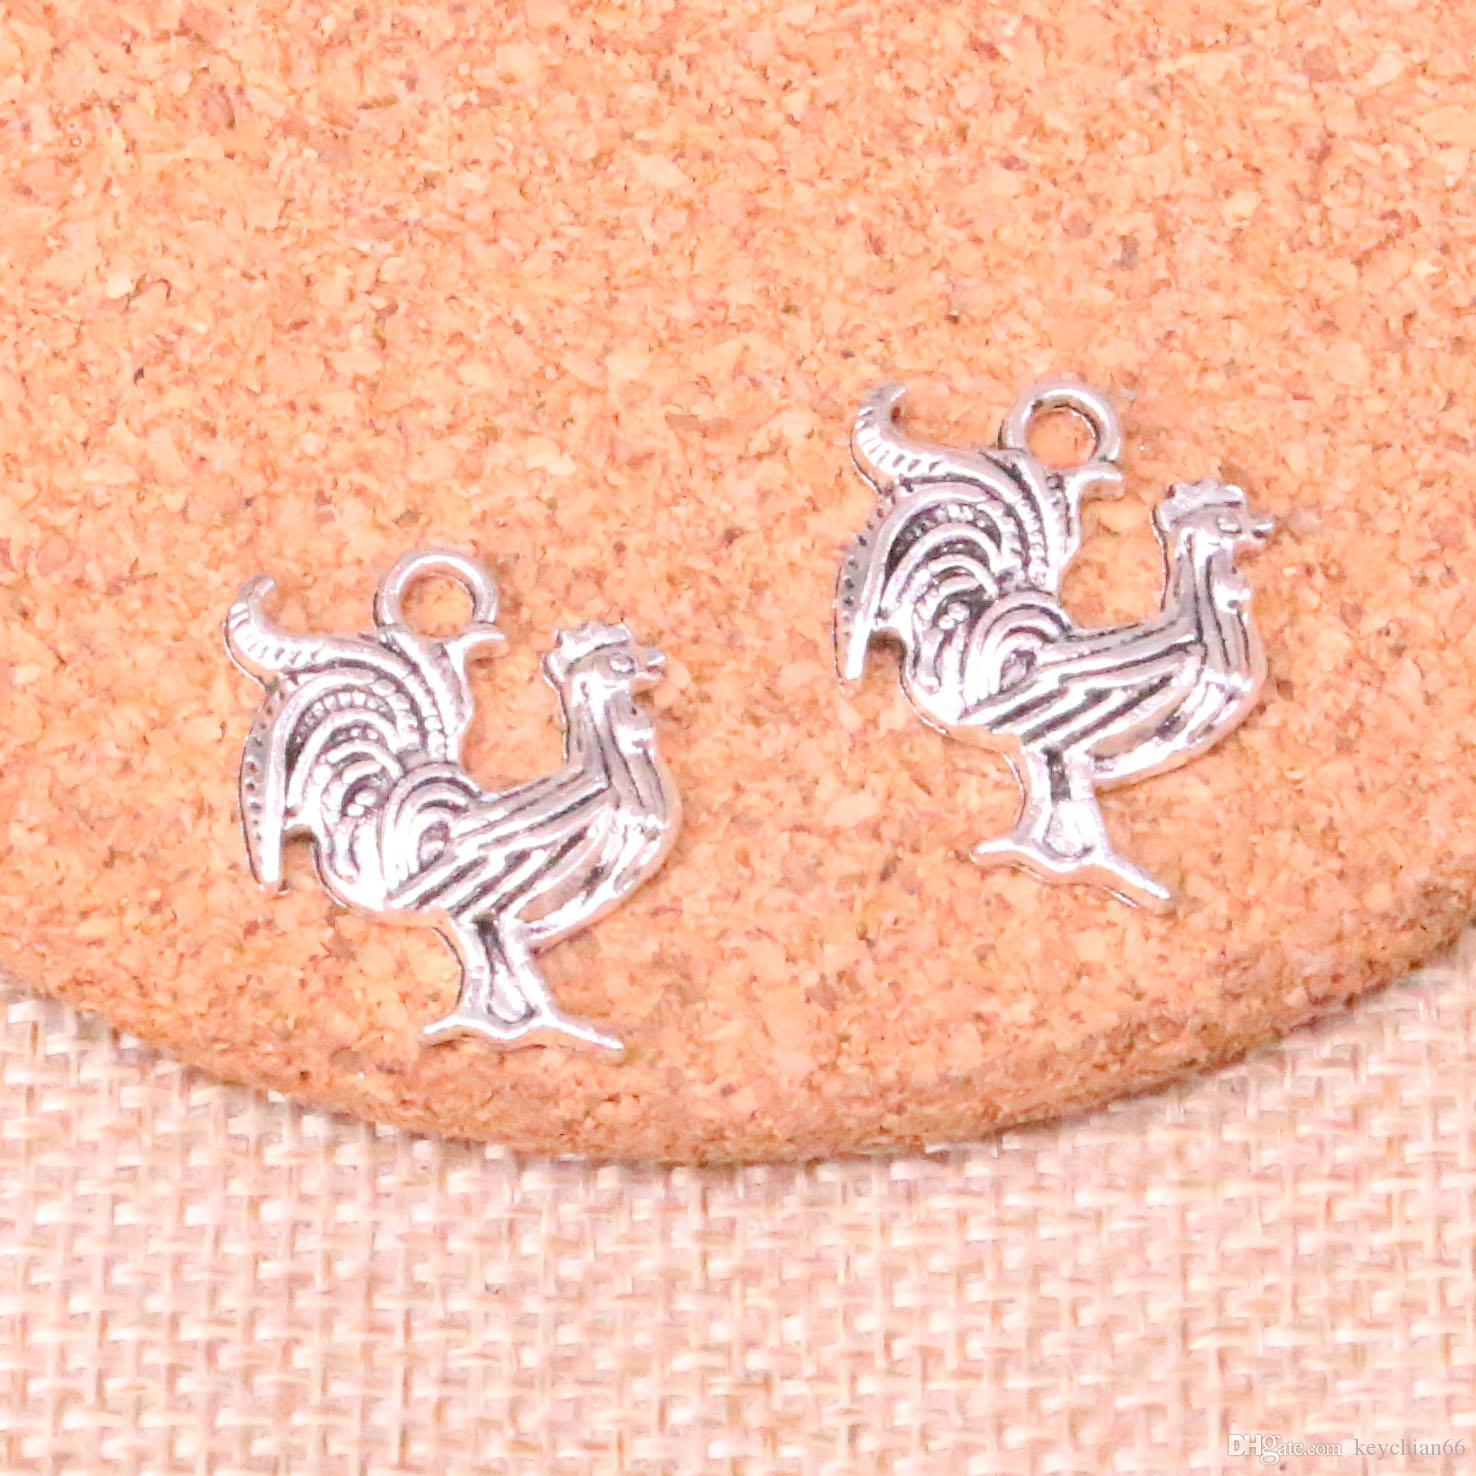 68pcs Antique silver cock rooster Charms Pendant Fit Bracelets Necklace DIY Metal Jewelry Making 22*18mm